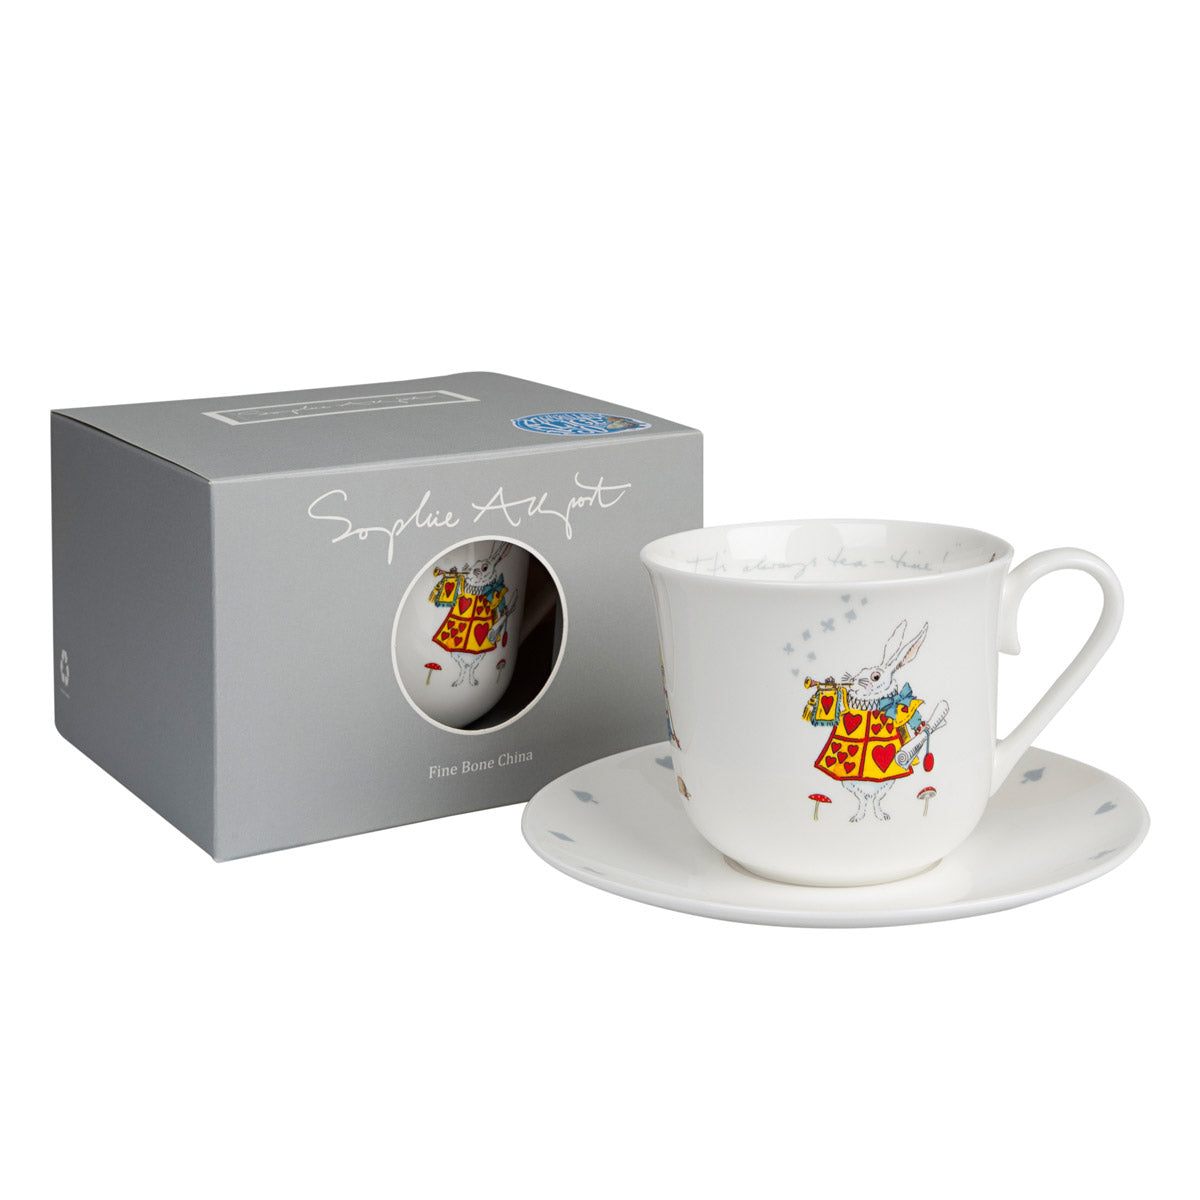 Alice in Wonderland Teacup and Saucer